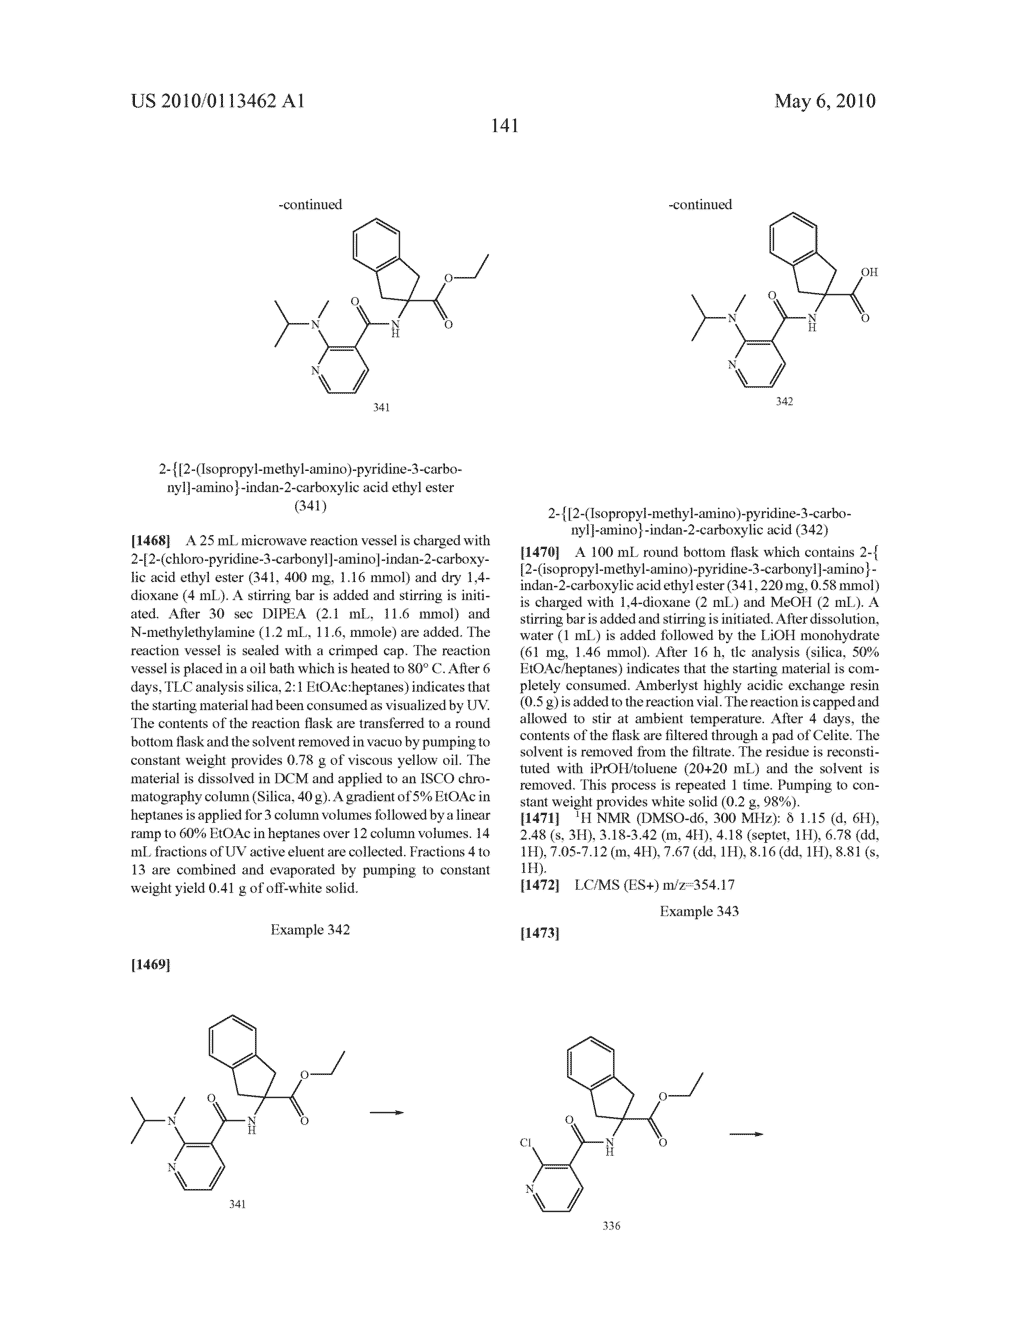 SUBSTITUTED BENZOYLAMINO-INDAN-2-CARBOXYLIC ACIDS AND RELATED COMPOUNDS - diagram, schematic, and image 142